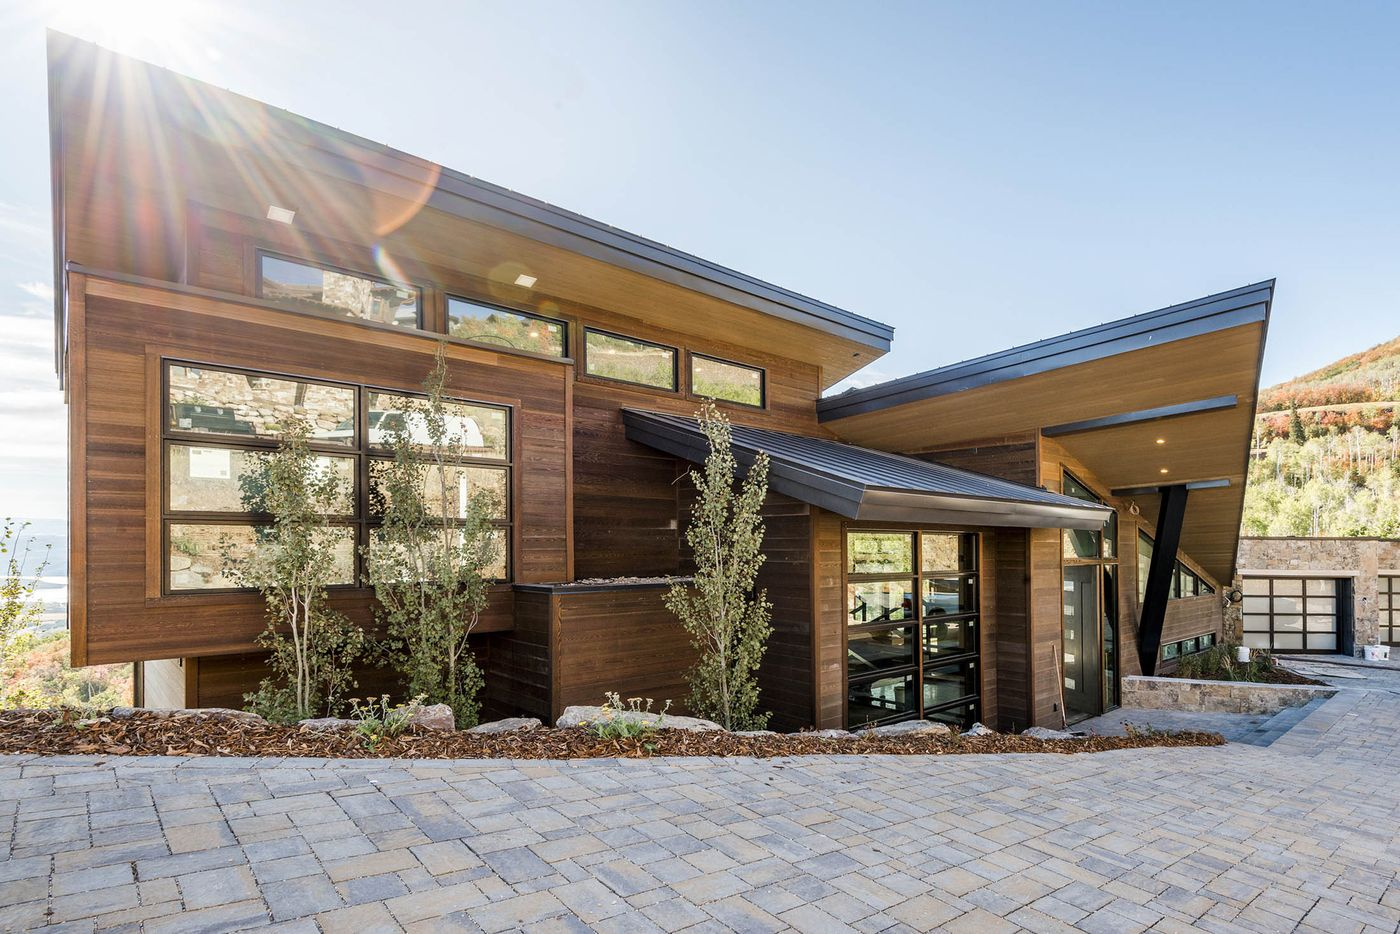 3007 Deer Crest Estates Drive in Park City, Utah, which is listed with Sotheby's International Realty for $7.49 Million. Source: Sotheby's International Realty